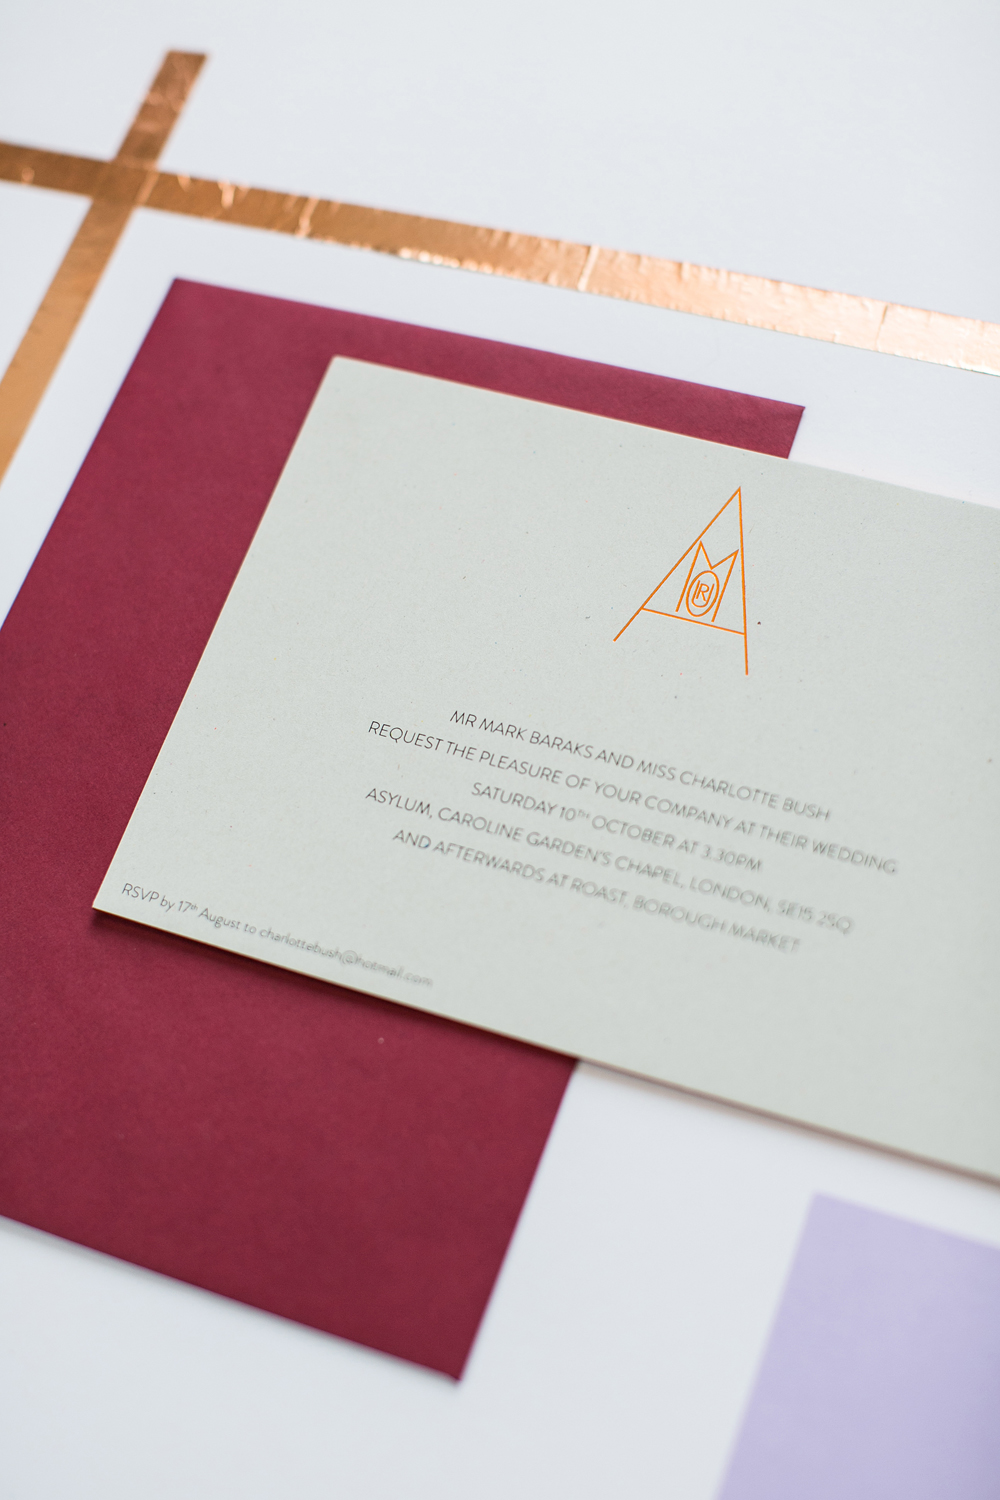 Charlotte and Mark's copper foiled stationery for a wedding at the Asylum, Peckham